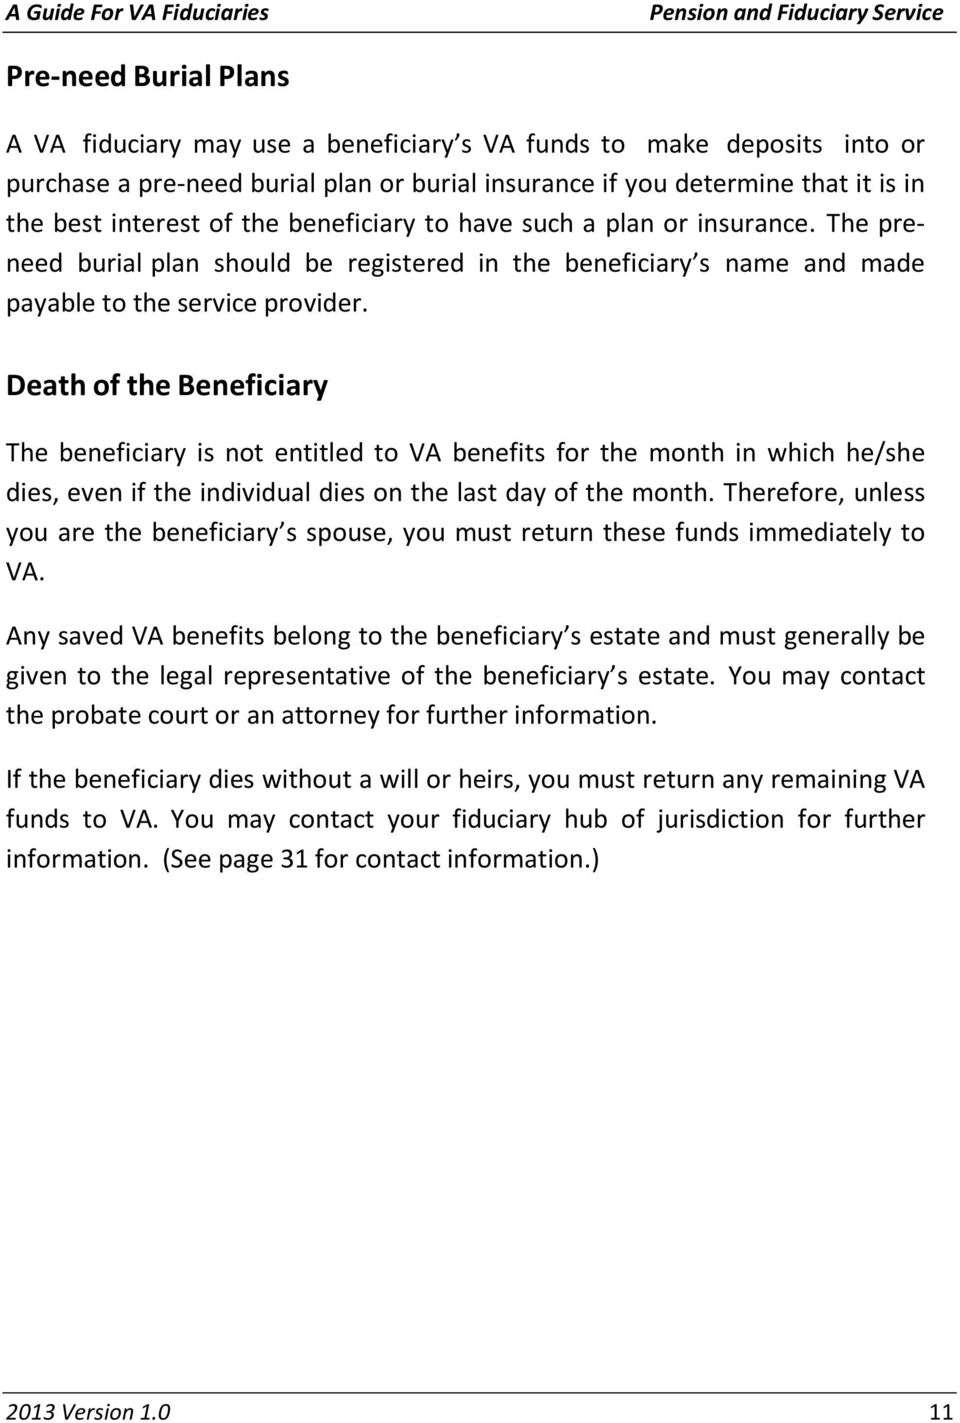 Death of the Beneficiary The beneficiary is not entitled to VA benefits for the month in which he/she dies, even if the individual dies on the last day of the month.